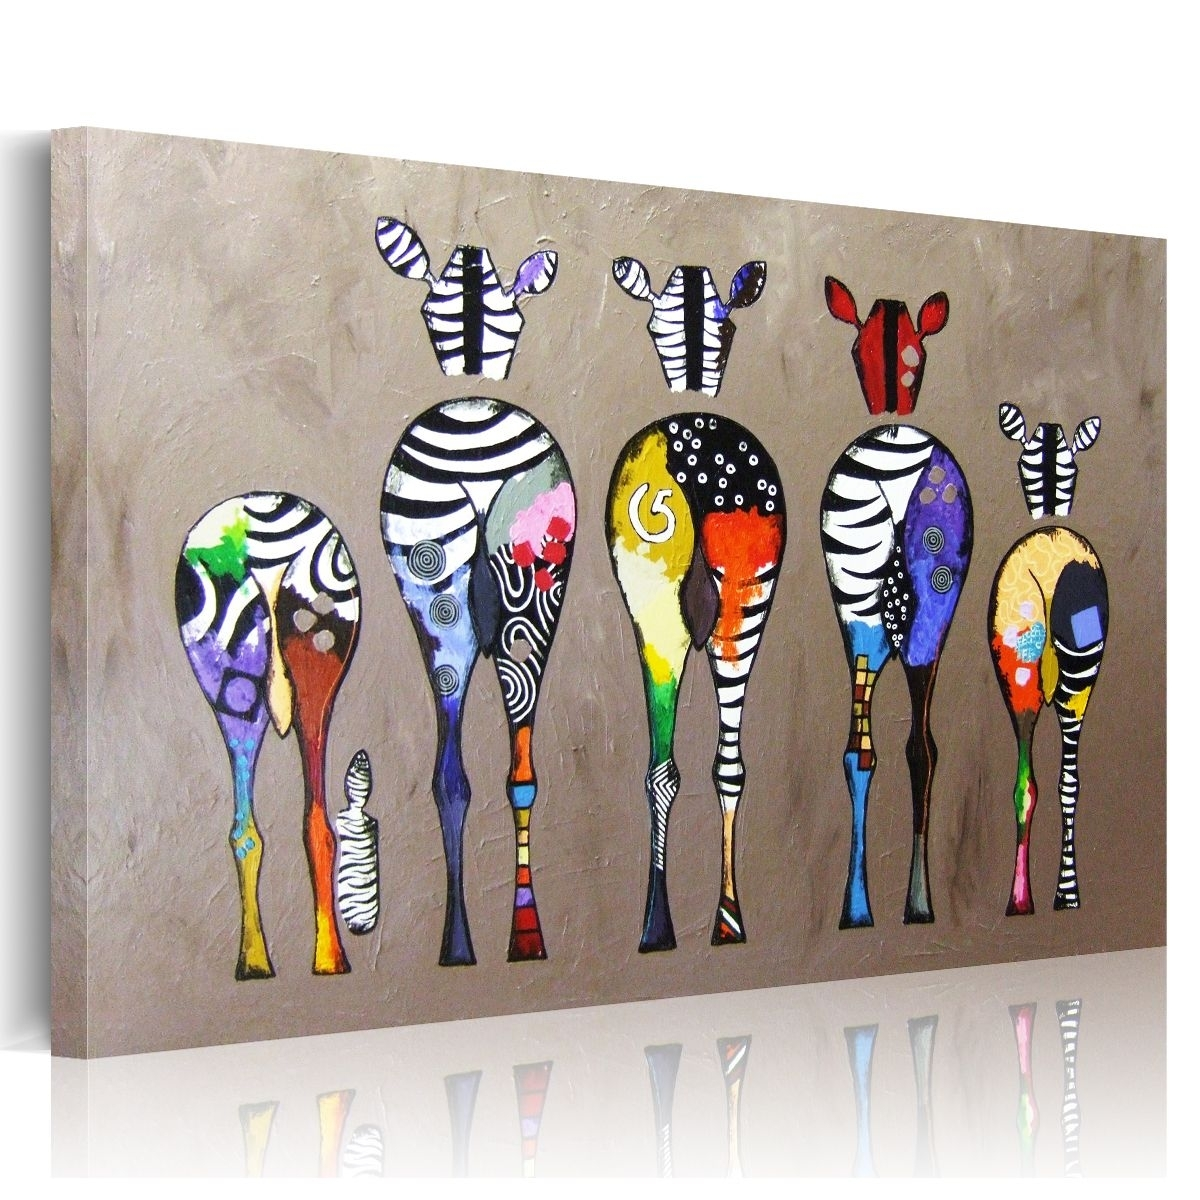 Hd Abstract Zebra Canvas Prints Paintings Wall Art Home Decor With Regard To 2018 Zebra Canvas Wall Art (View 12 of 20)